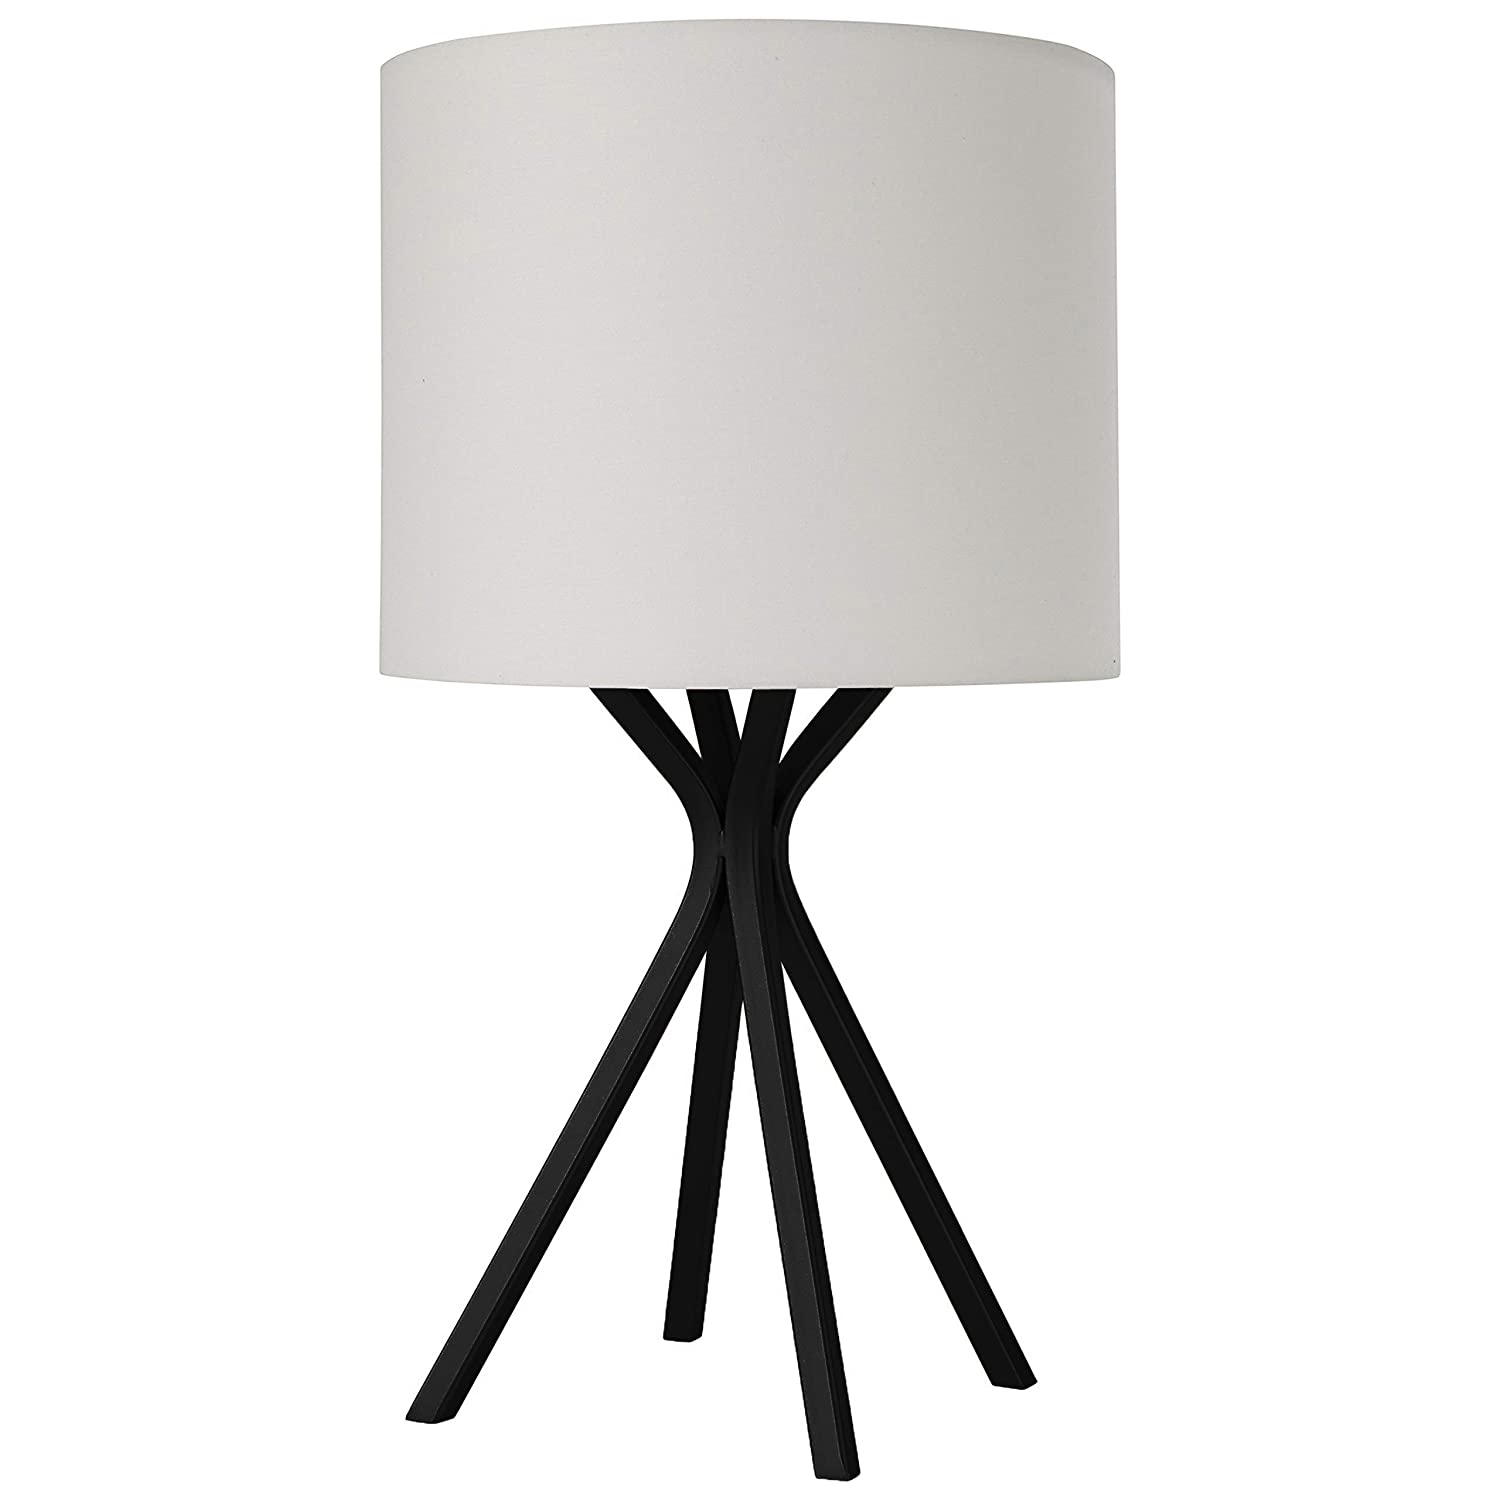 Rivet Matte Black Bedside Table Desk Lamp with Light Bulb - 18 Inches, Linen Shade